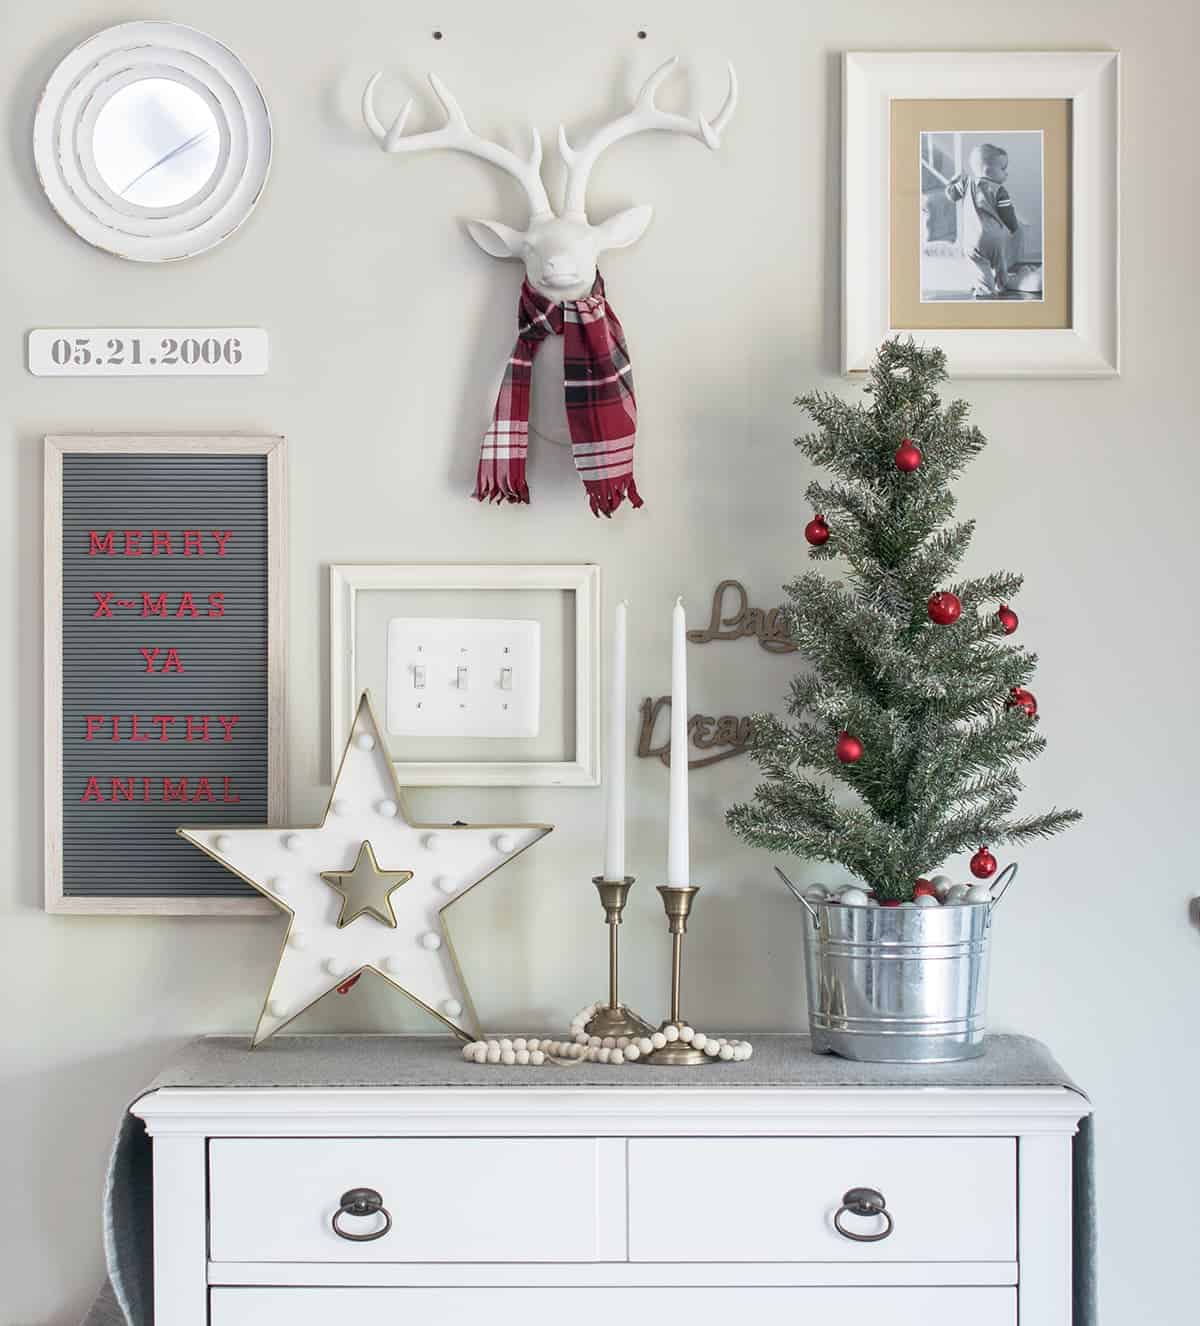 Christmas themed wall decor with red, white, and green color scheme.